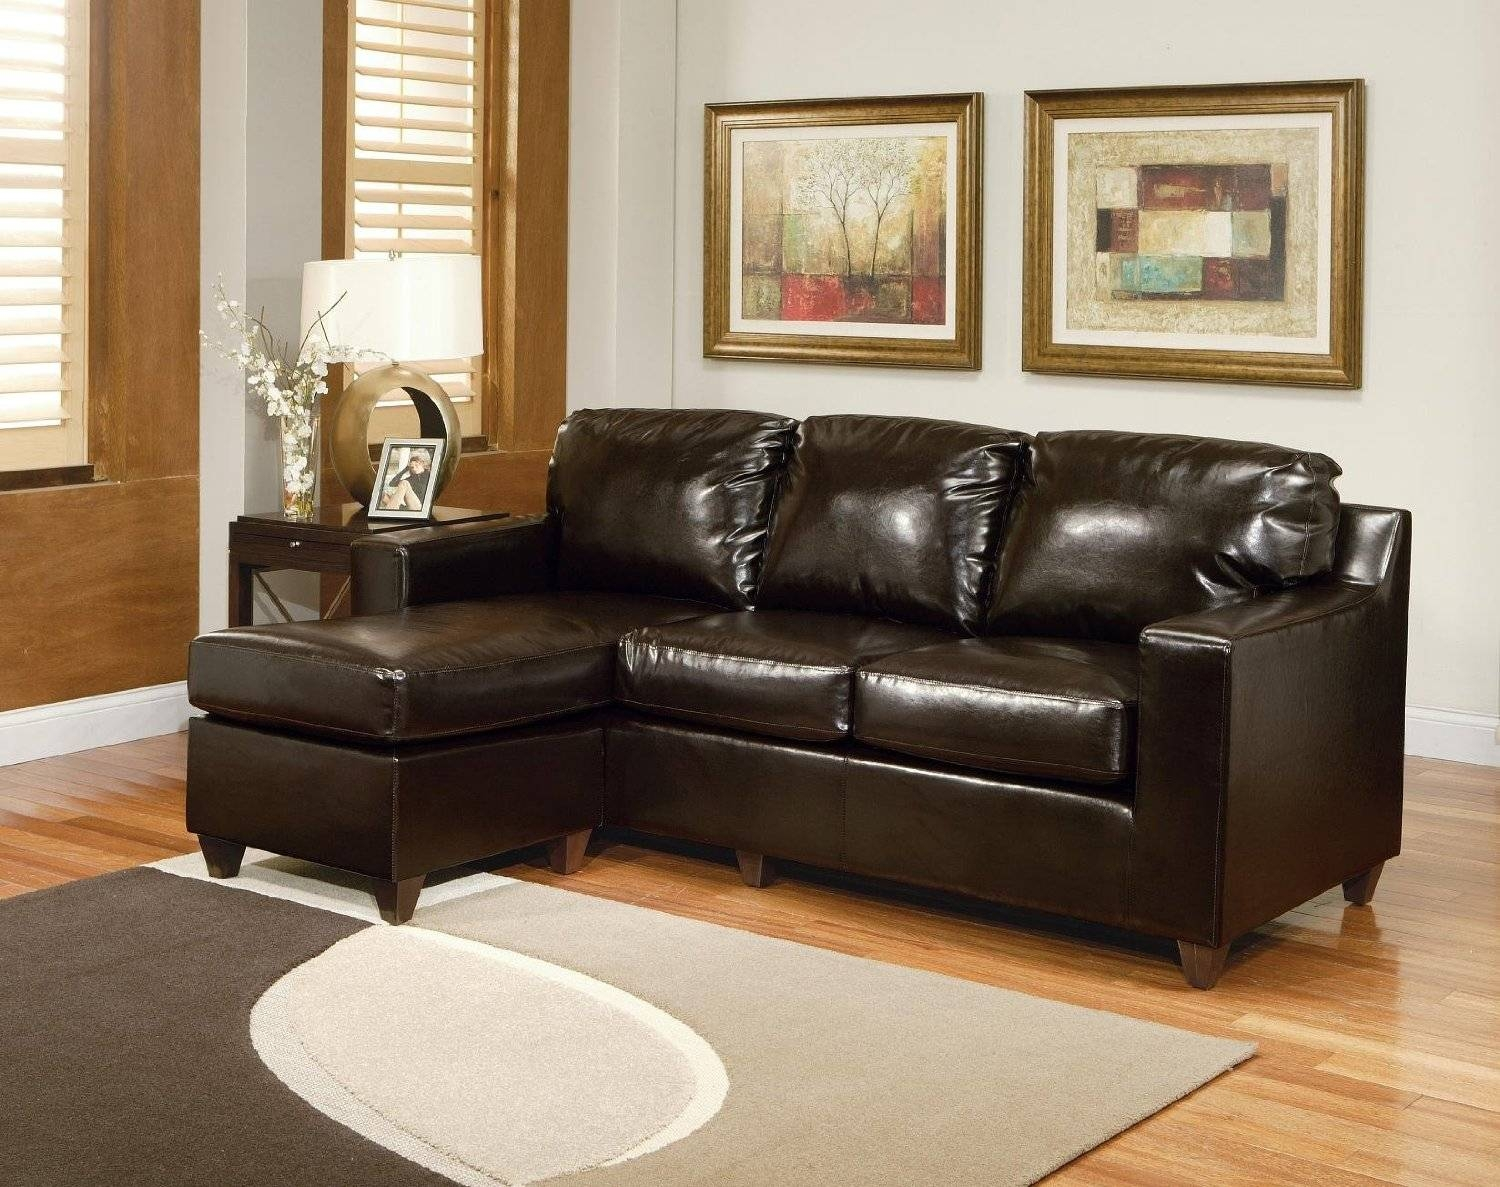 Amusing Sofa Sectionals For Small Spaces 41 With Additional Inside Contemporary Black Leather Sectional Sofa Left Side Chaise (View 2 of 30)